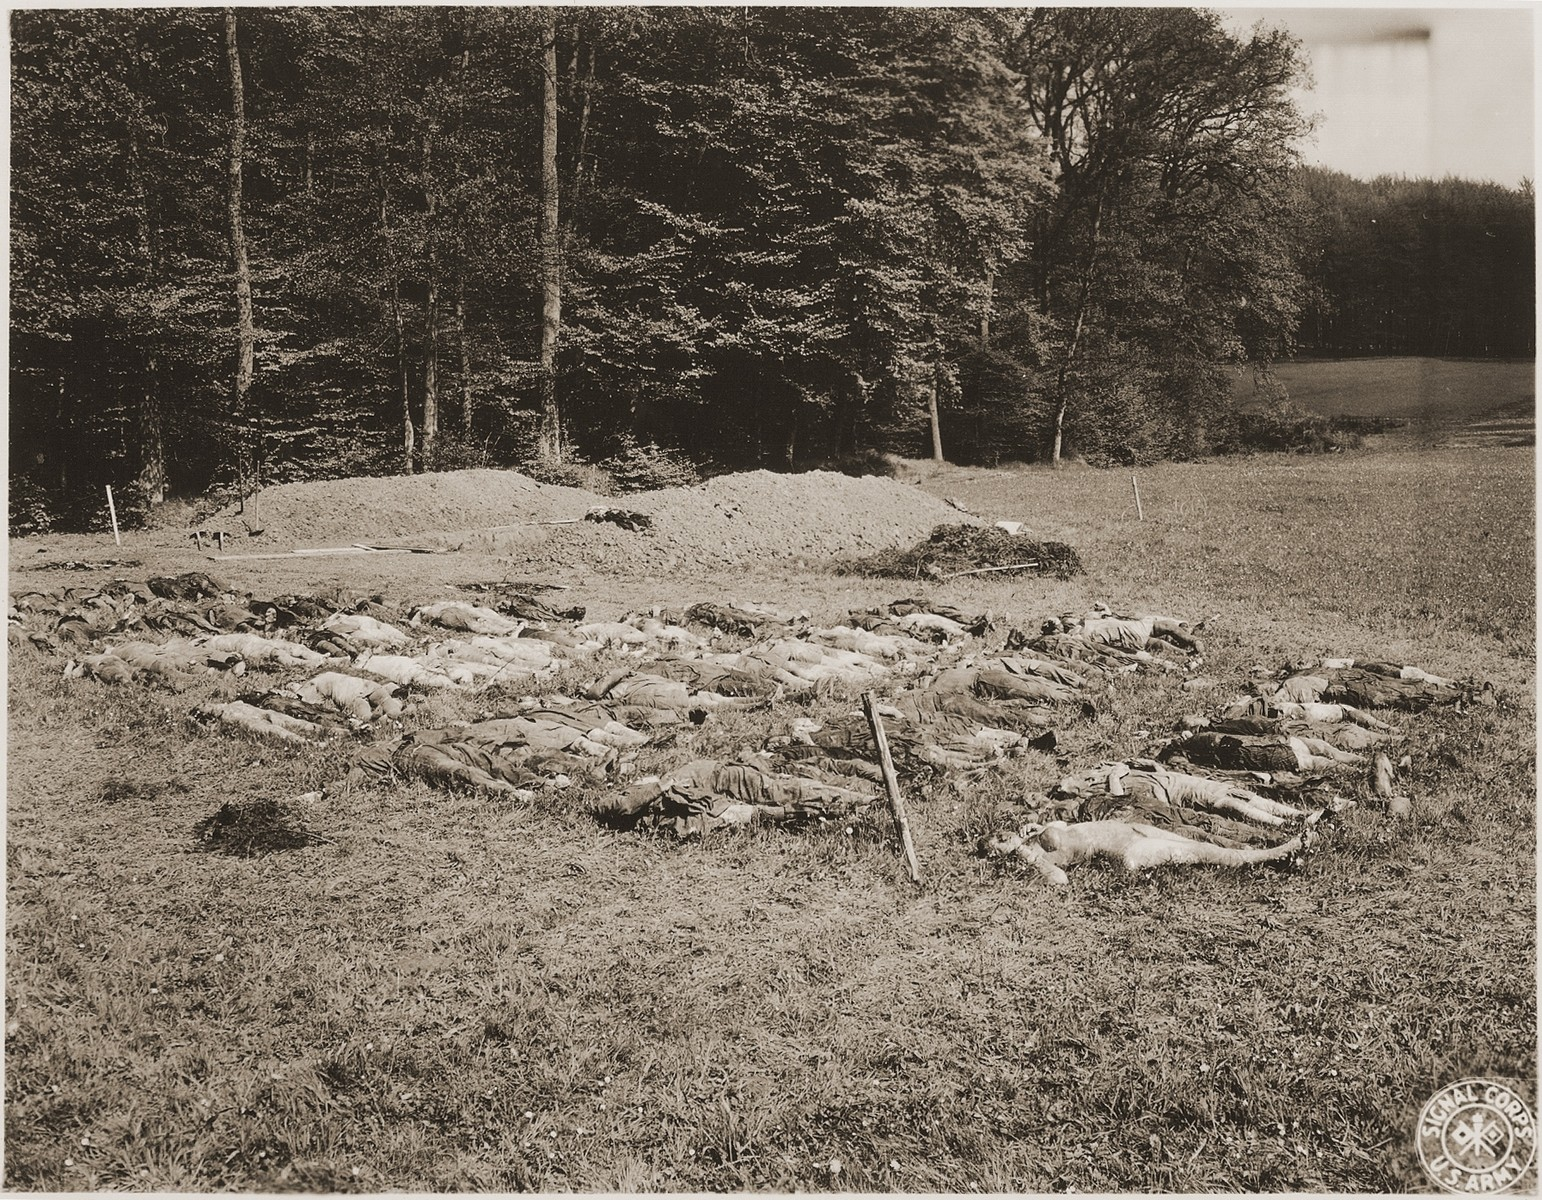 The corpses of prisoners exhumed from a mass grave near Hirzenhain lie out in a field.